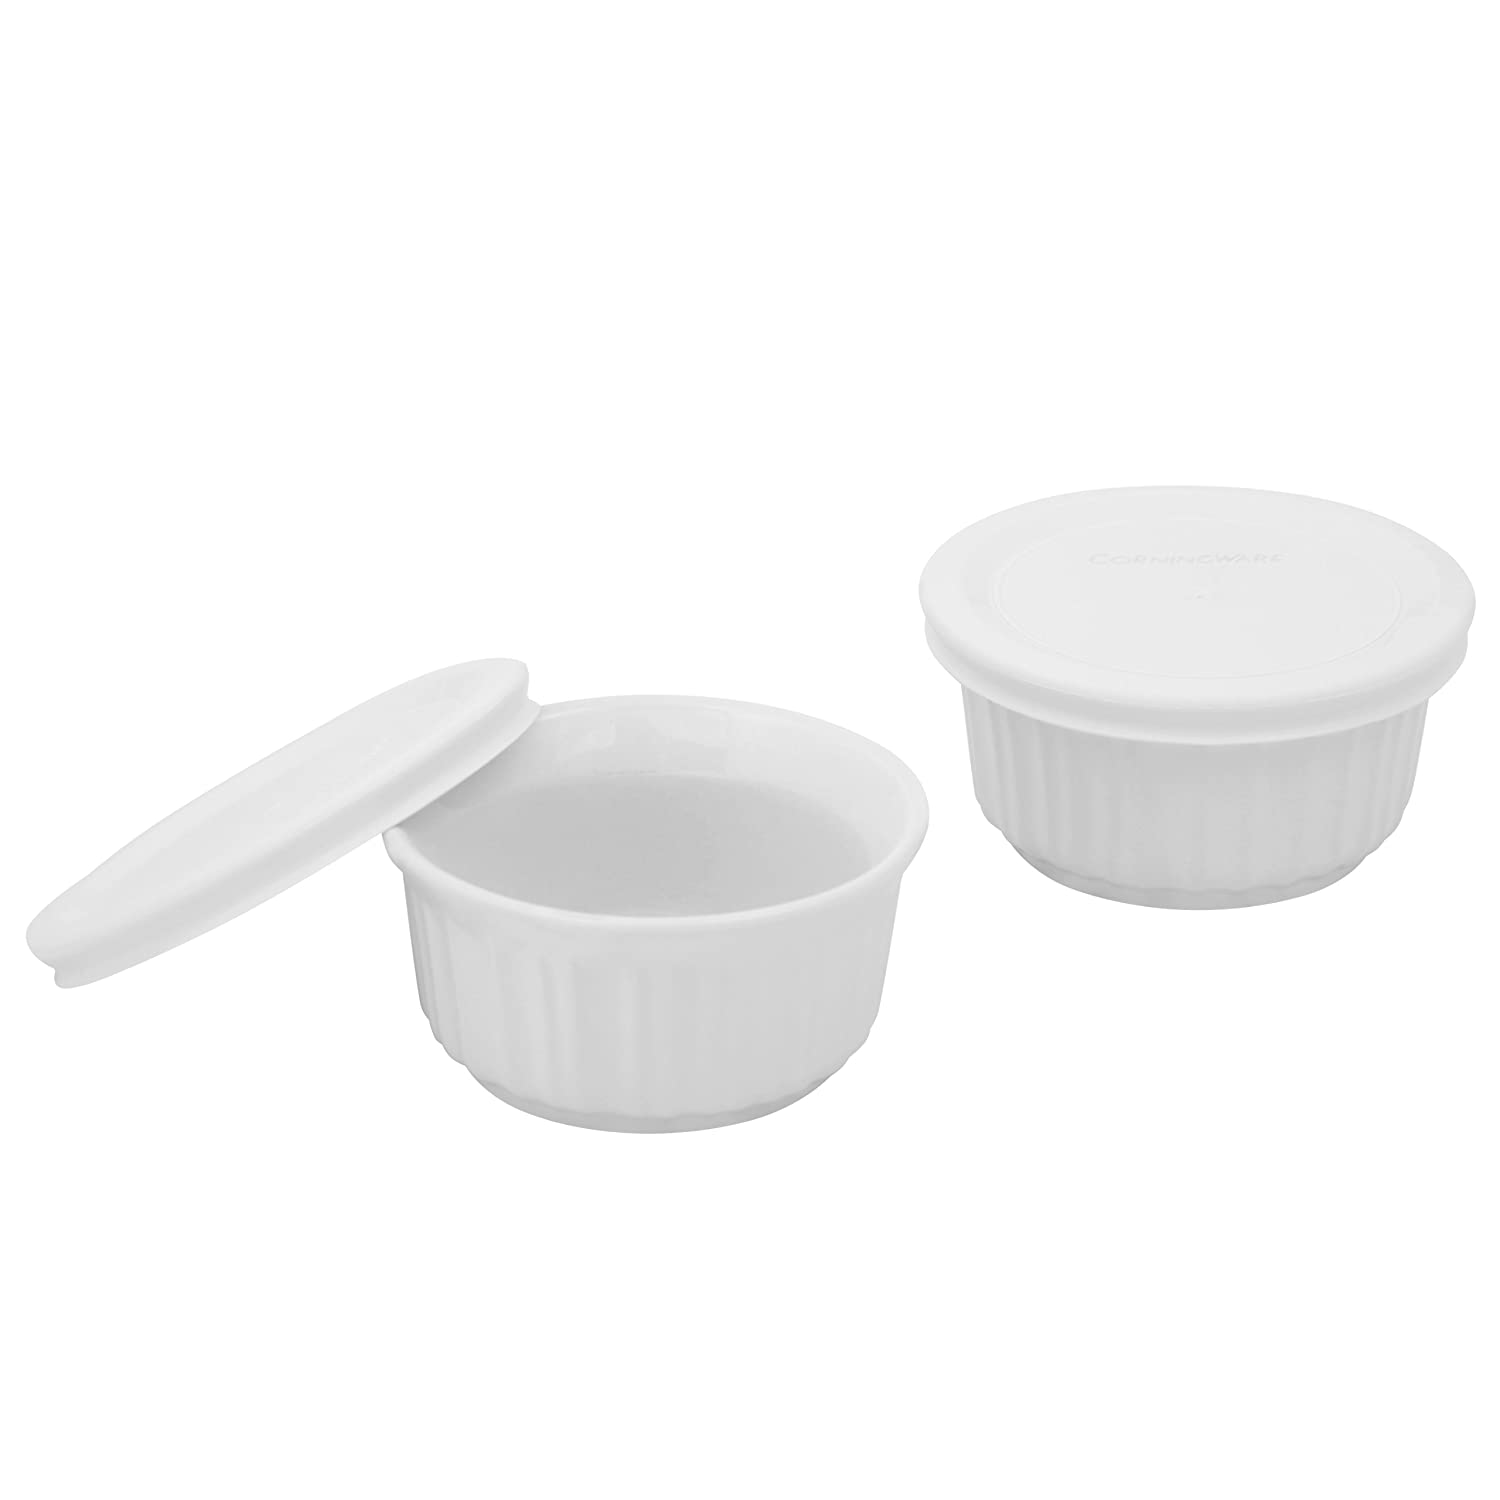 Corningware 1094146 French White 7-Ounce 2-Pack Ramekins with Lids